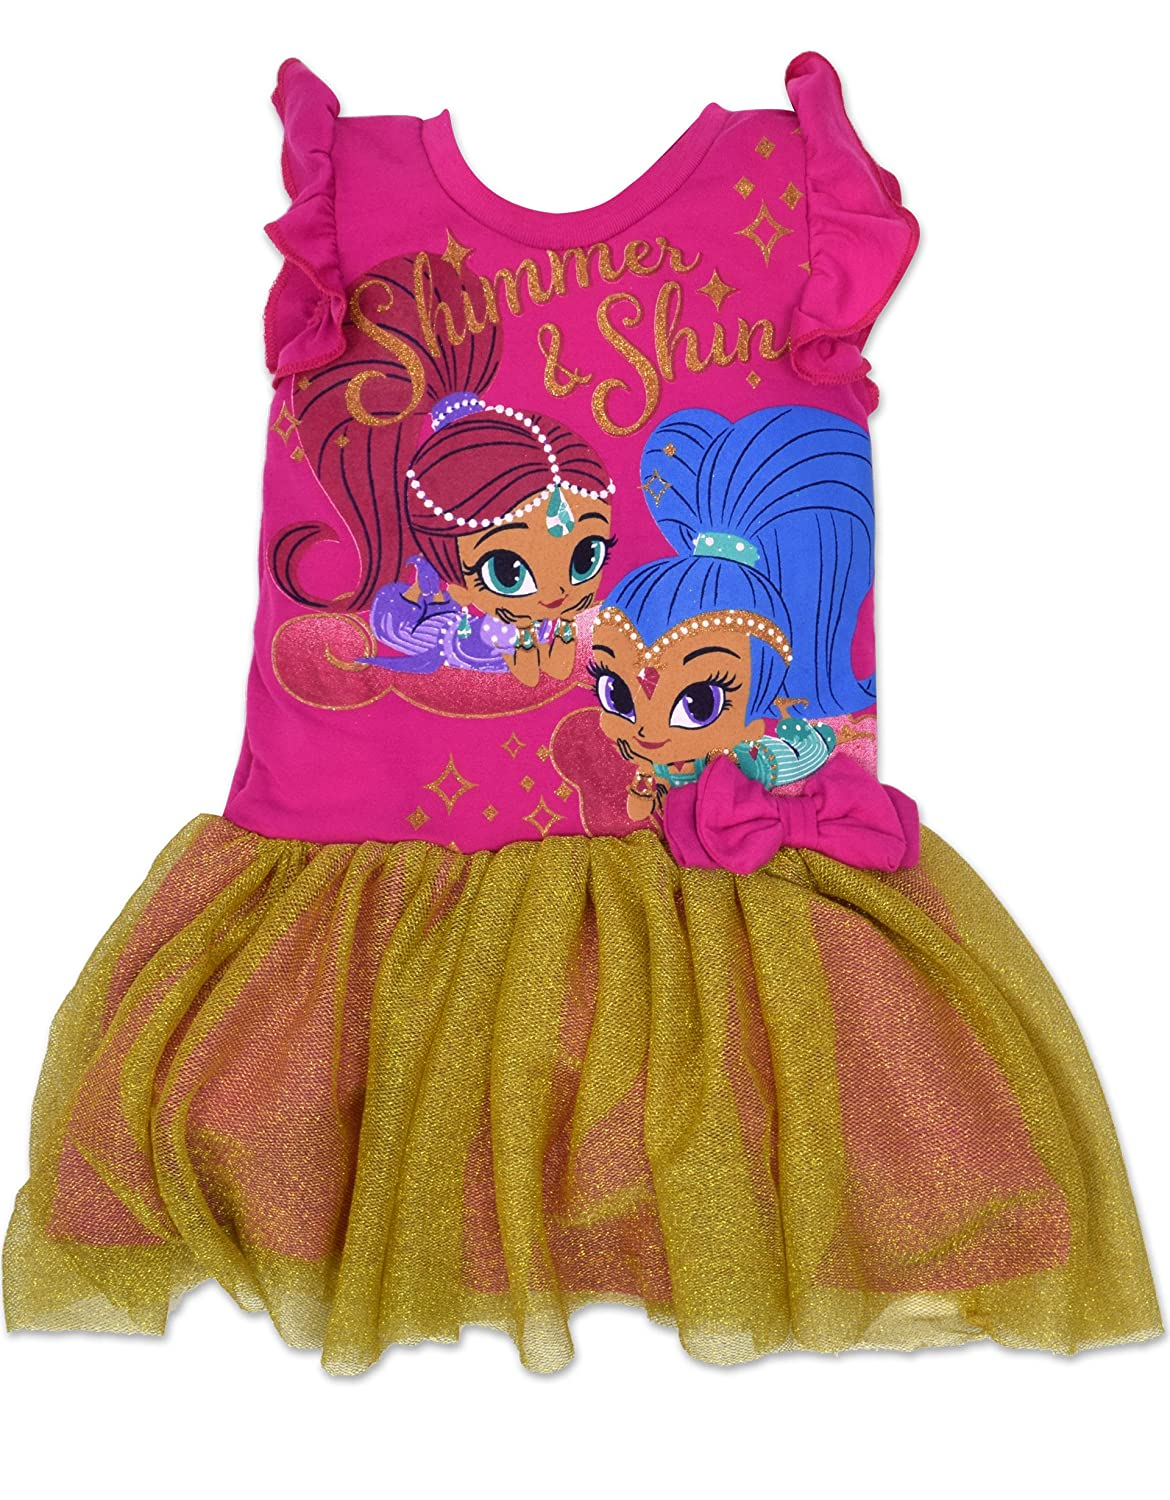 Top8  Toddler Girls  Shimmer and Shine Dress - Pink and Gold 645edd94e